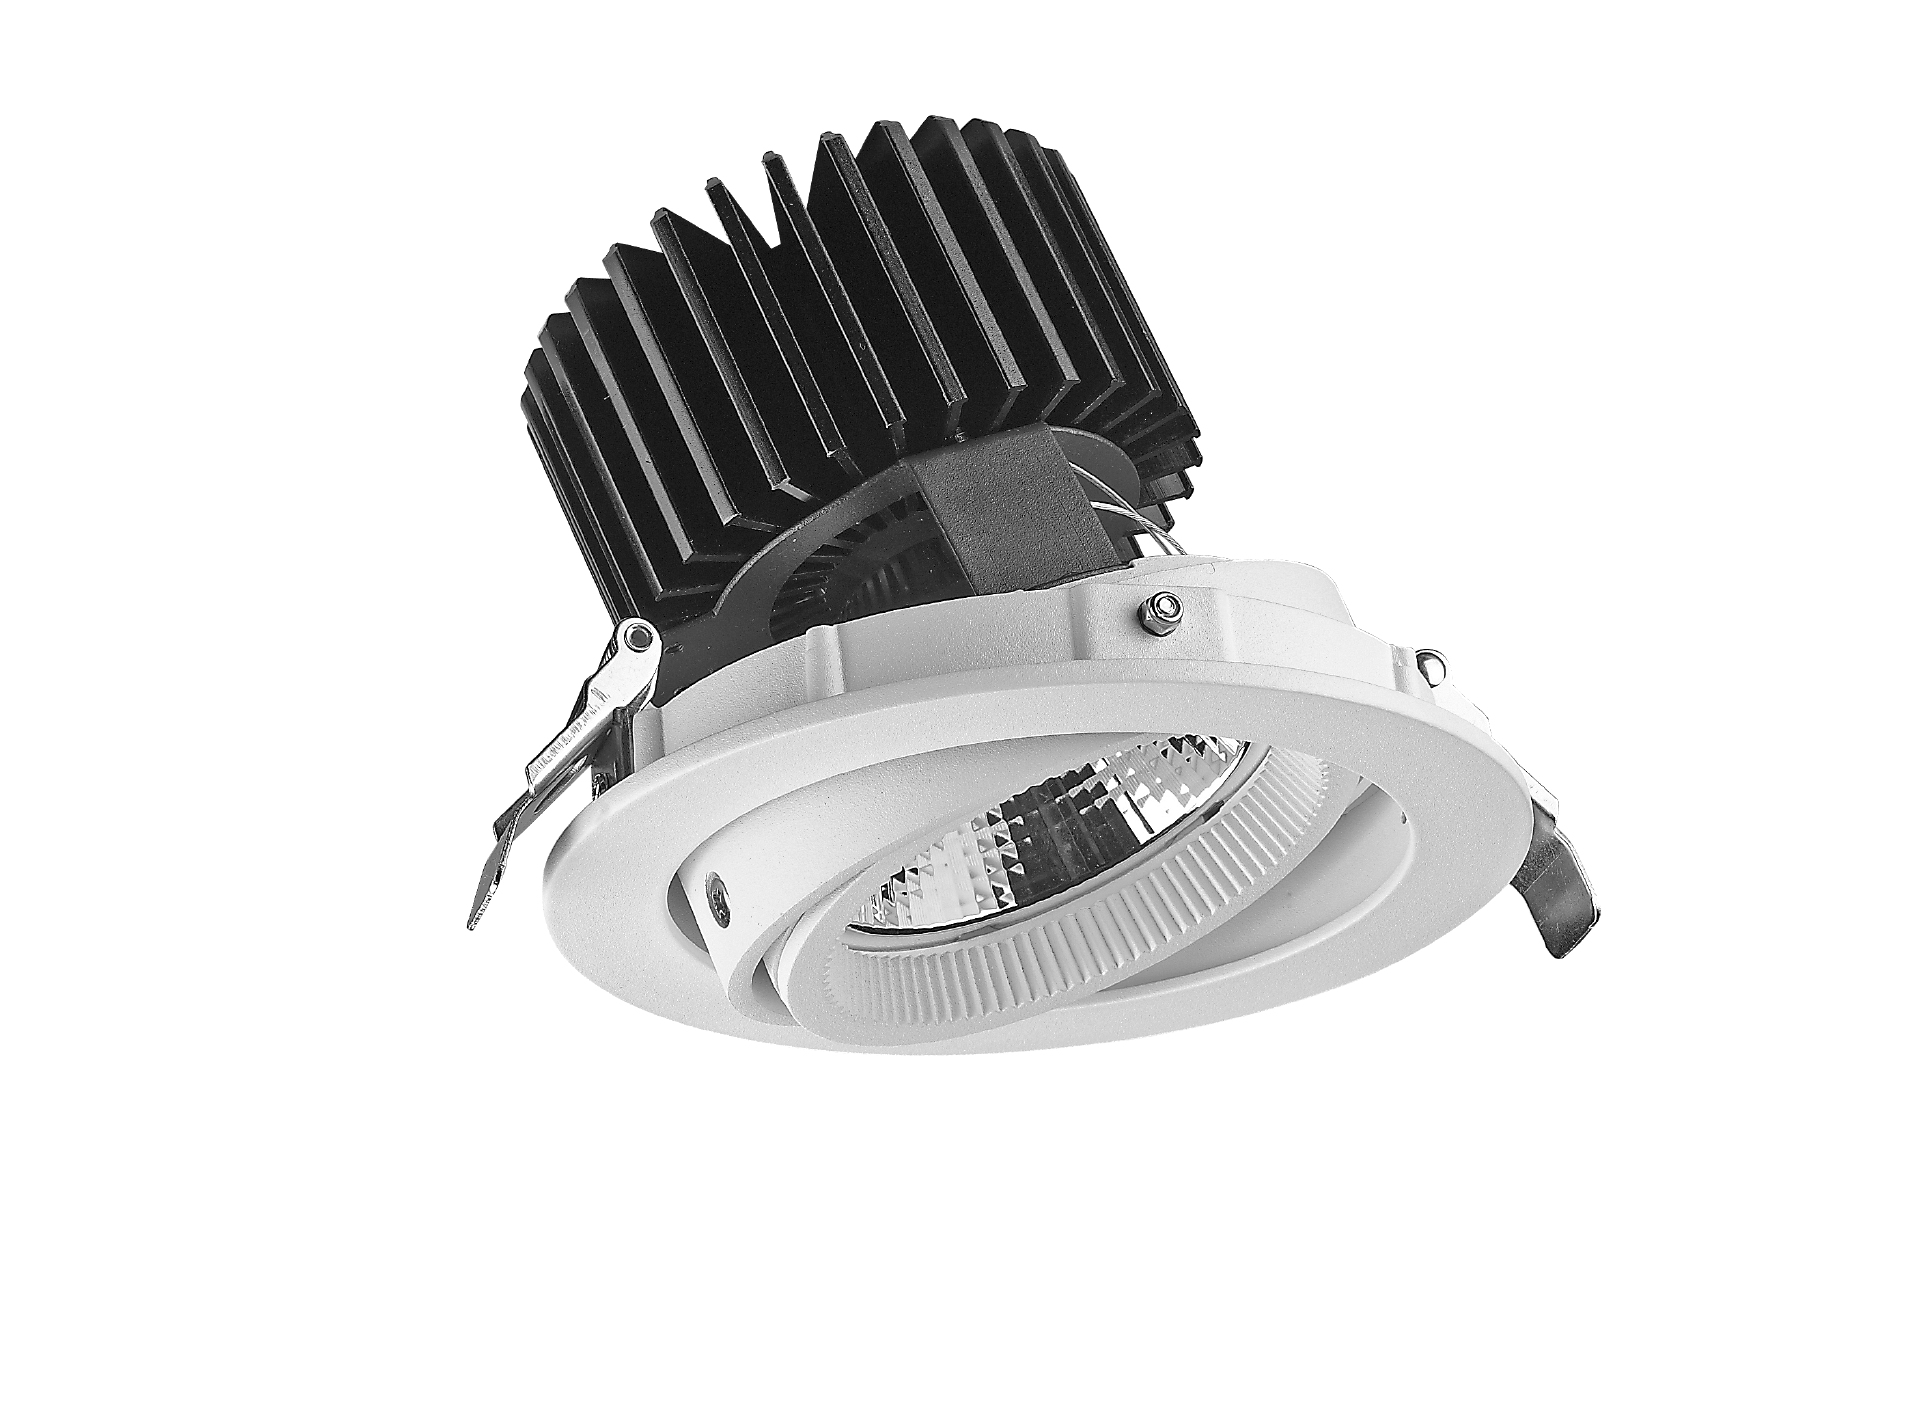 ADJ05 Adjustable LED Downlight 30W 35W